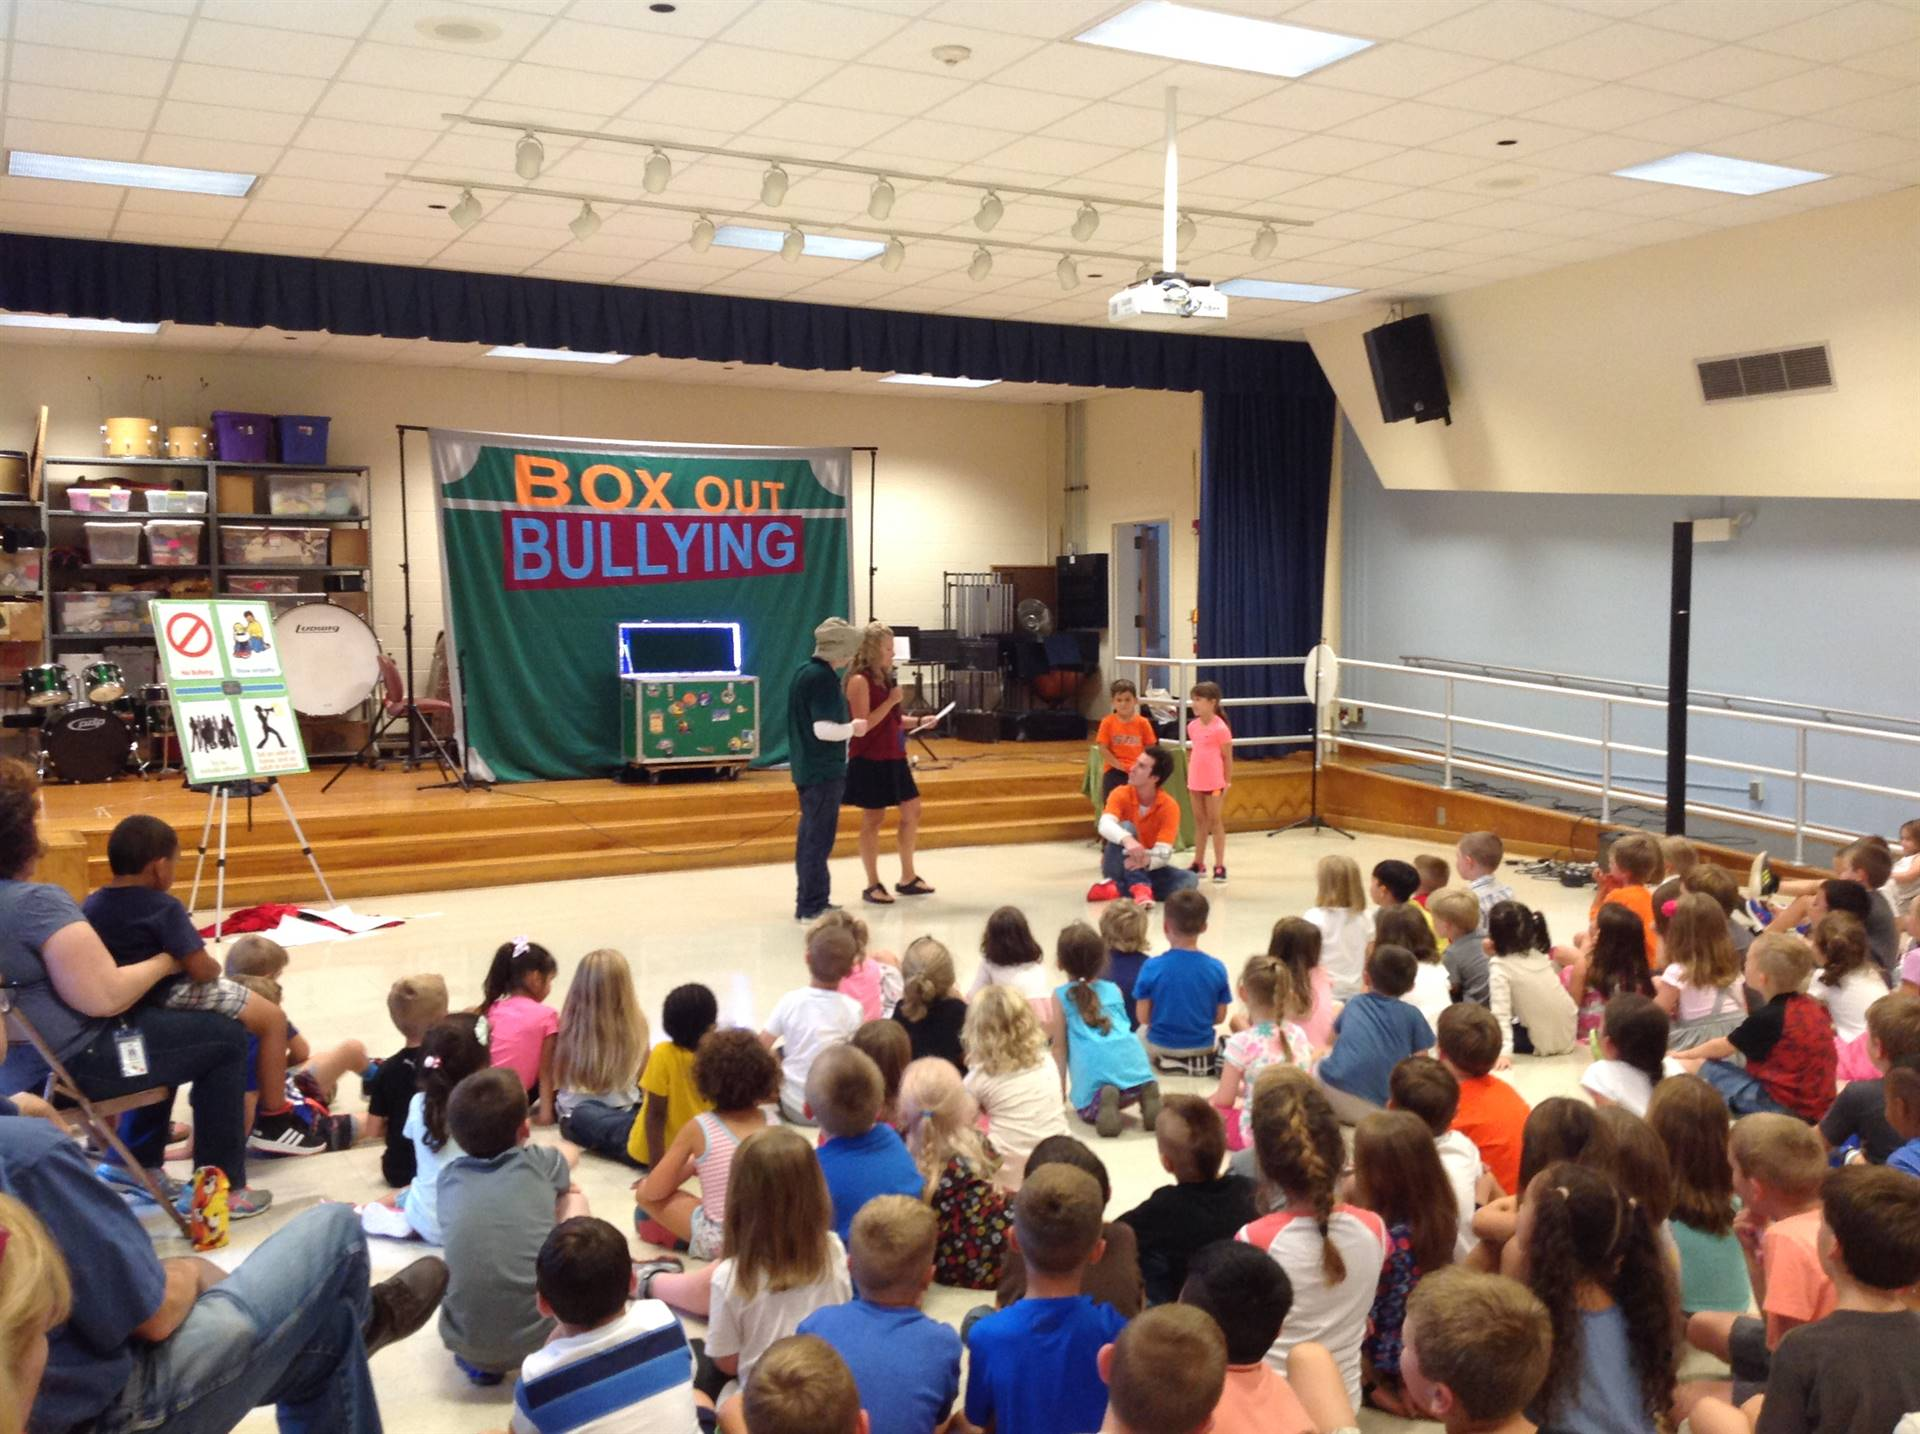 Box Out Bullying